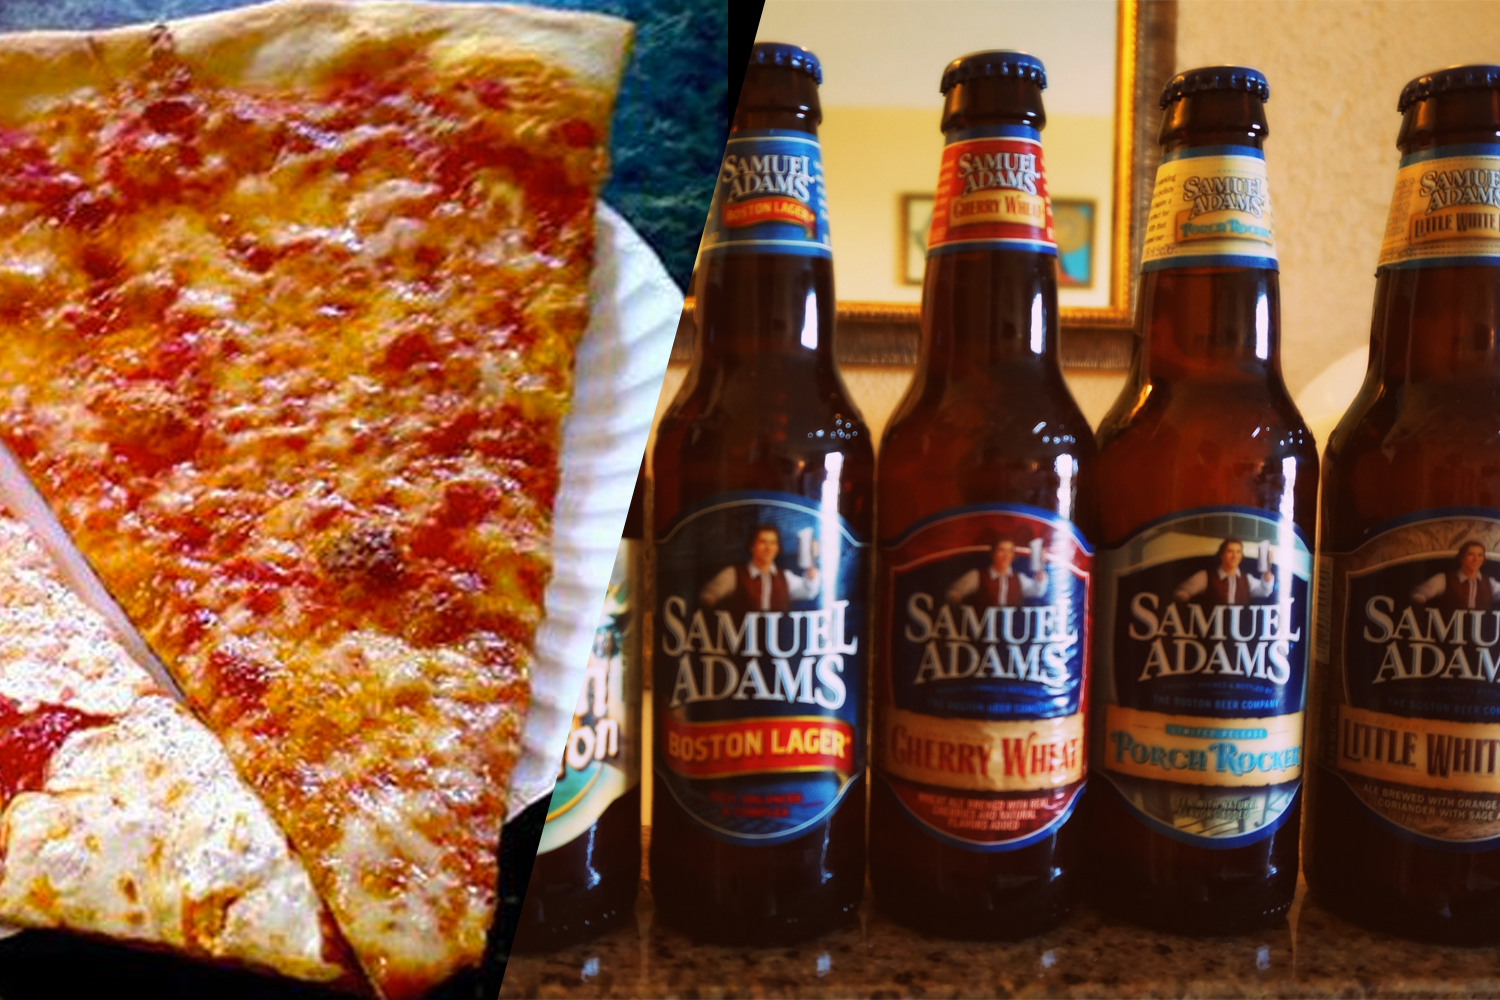 New York-style pizza and Boston lagers.